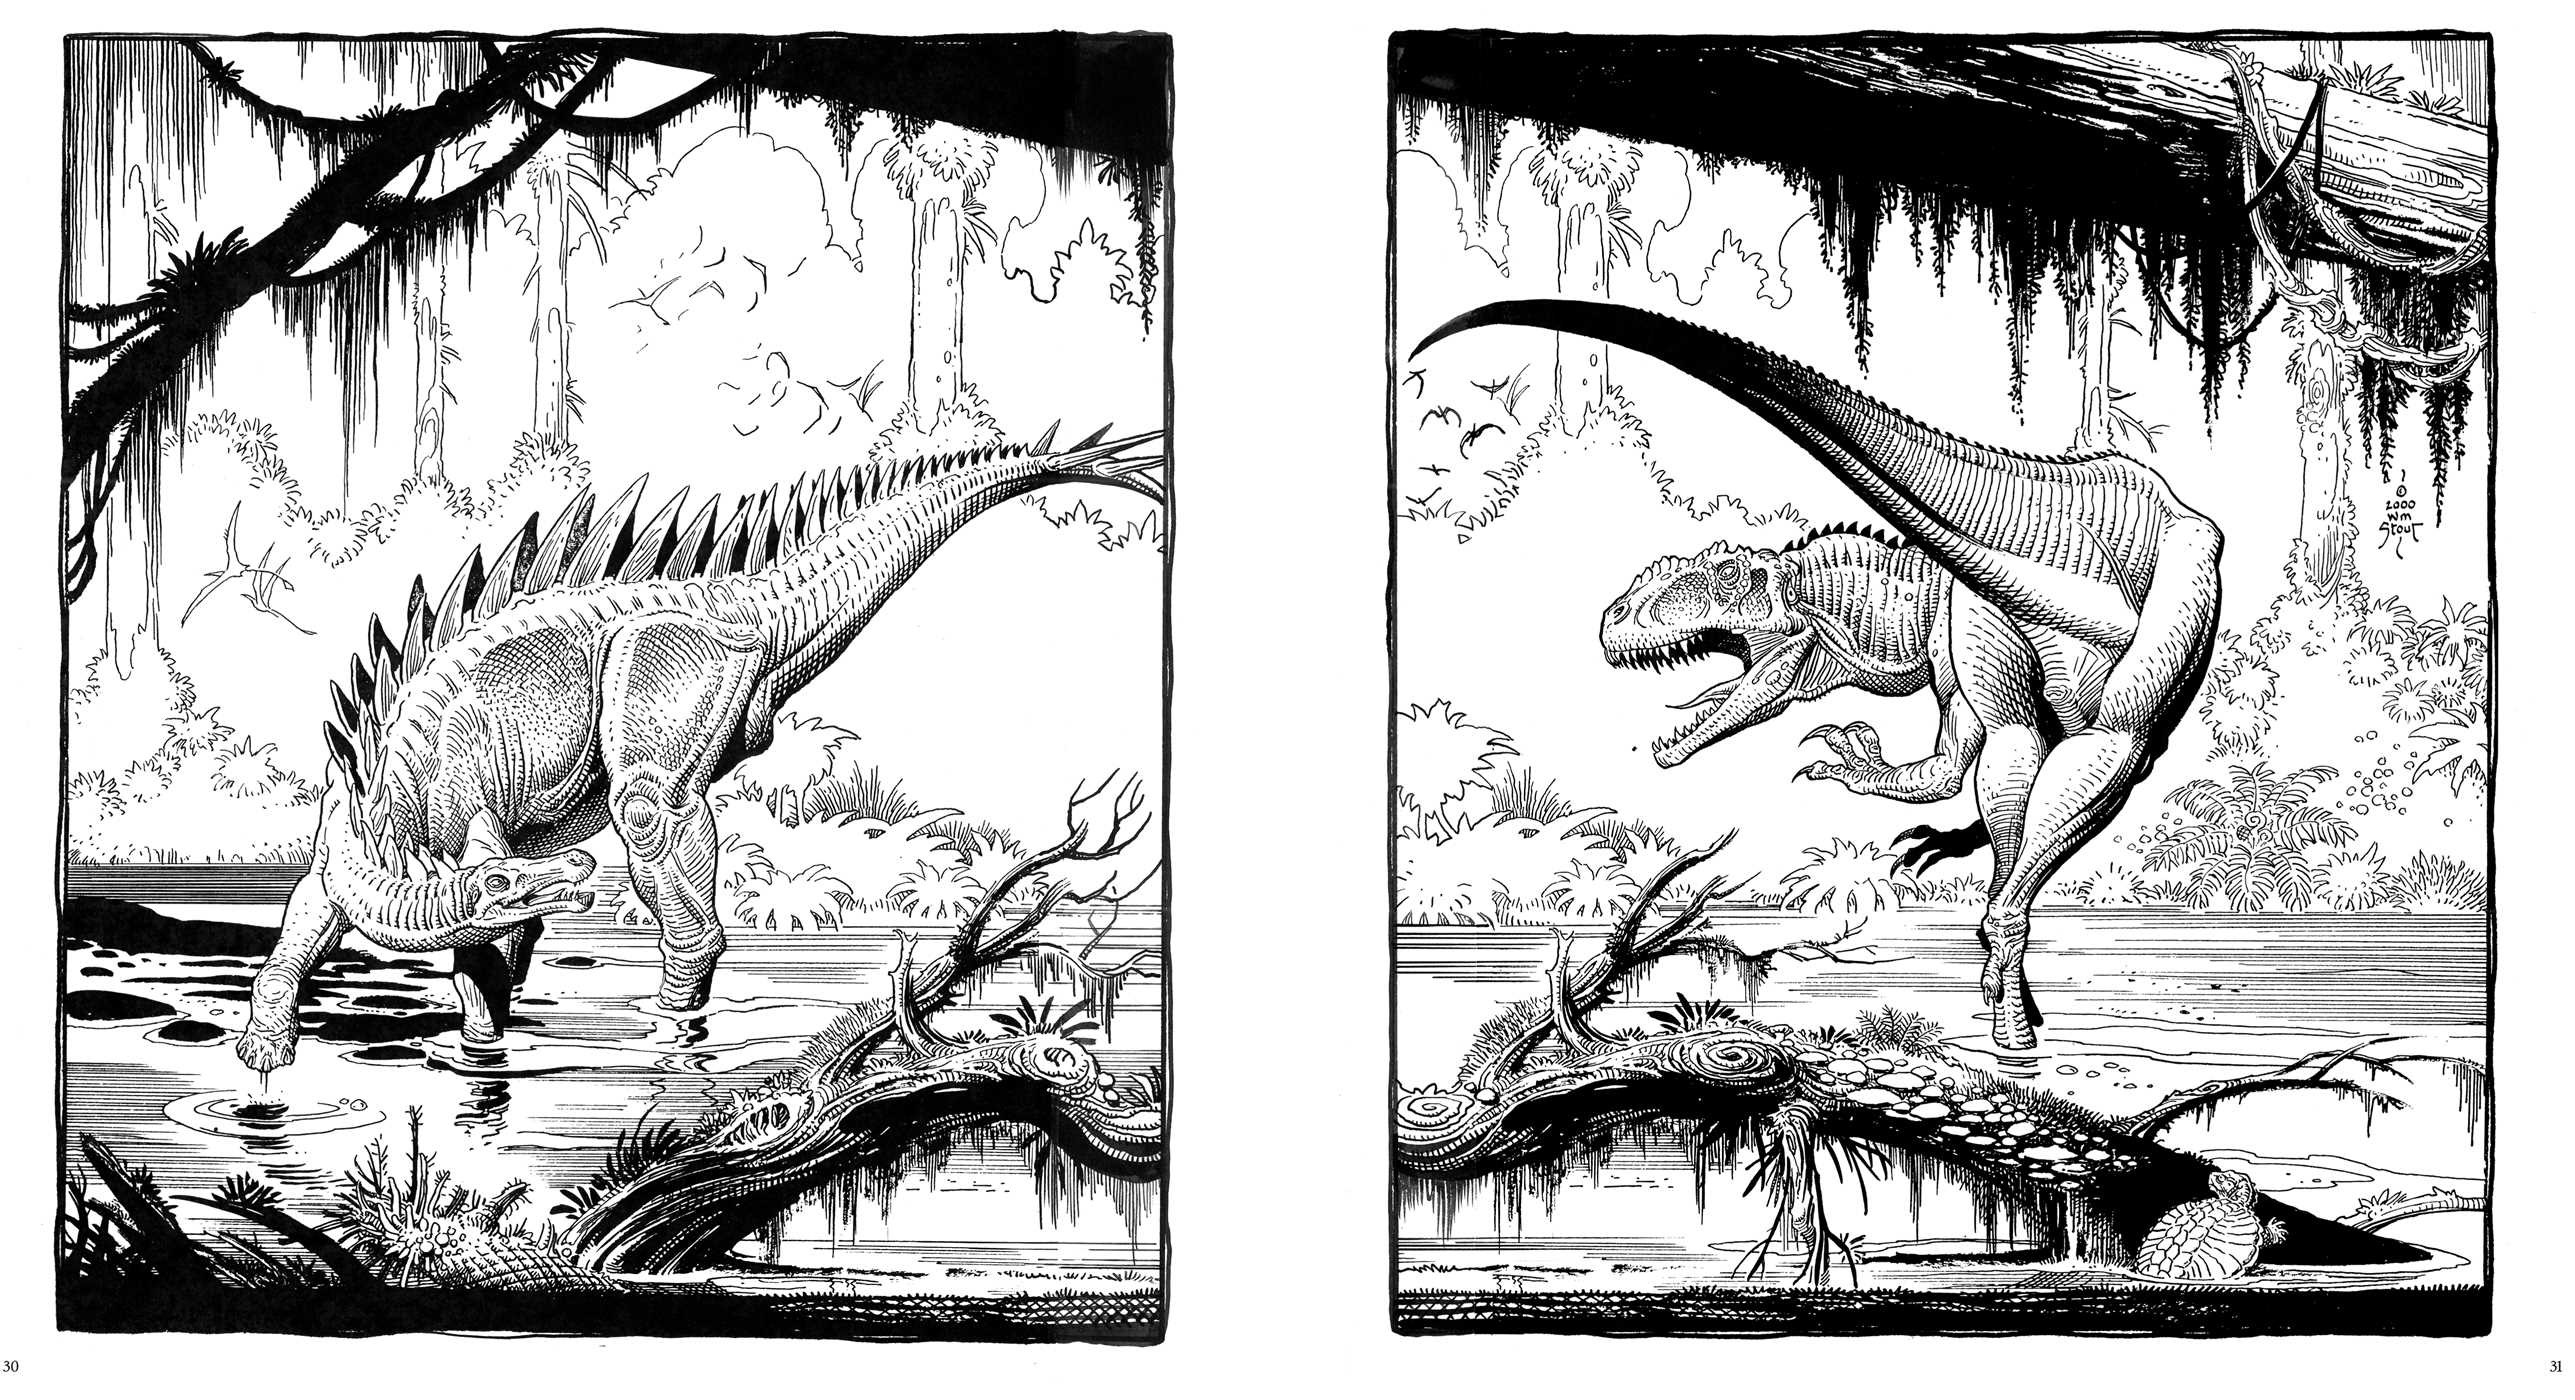 Dinosaurs A Coloring Book By William Stout Book By William Stout